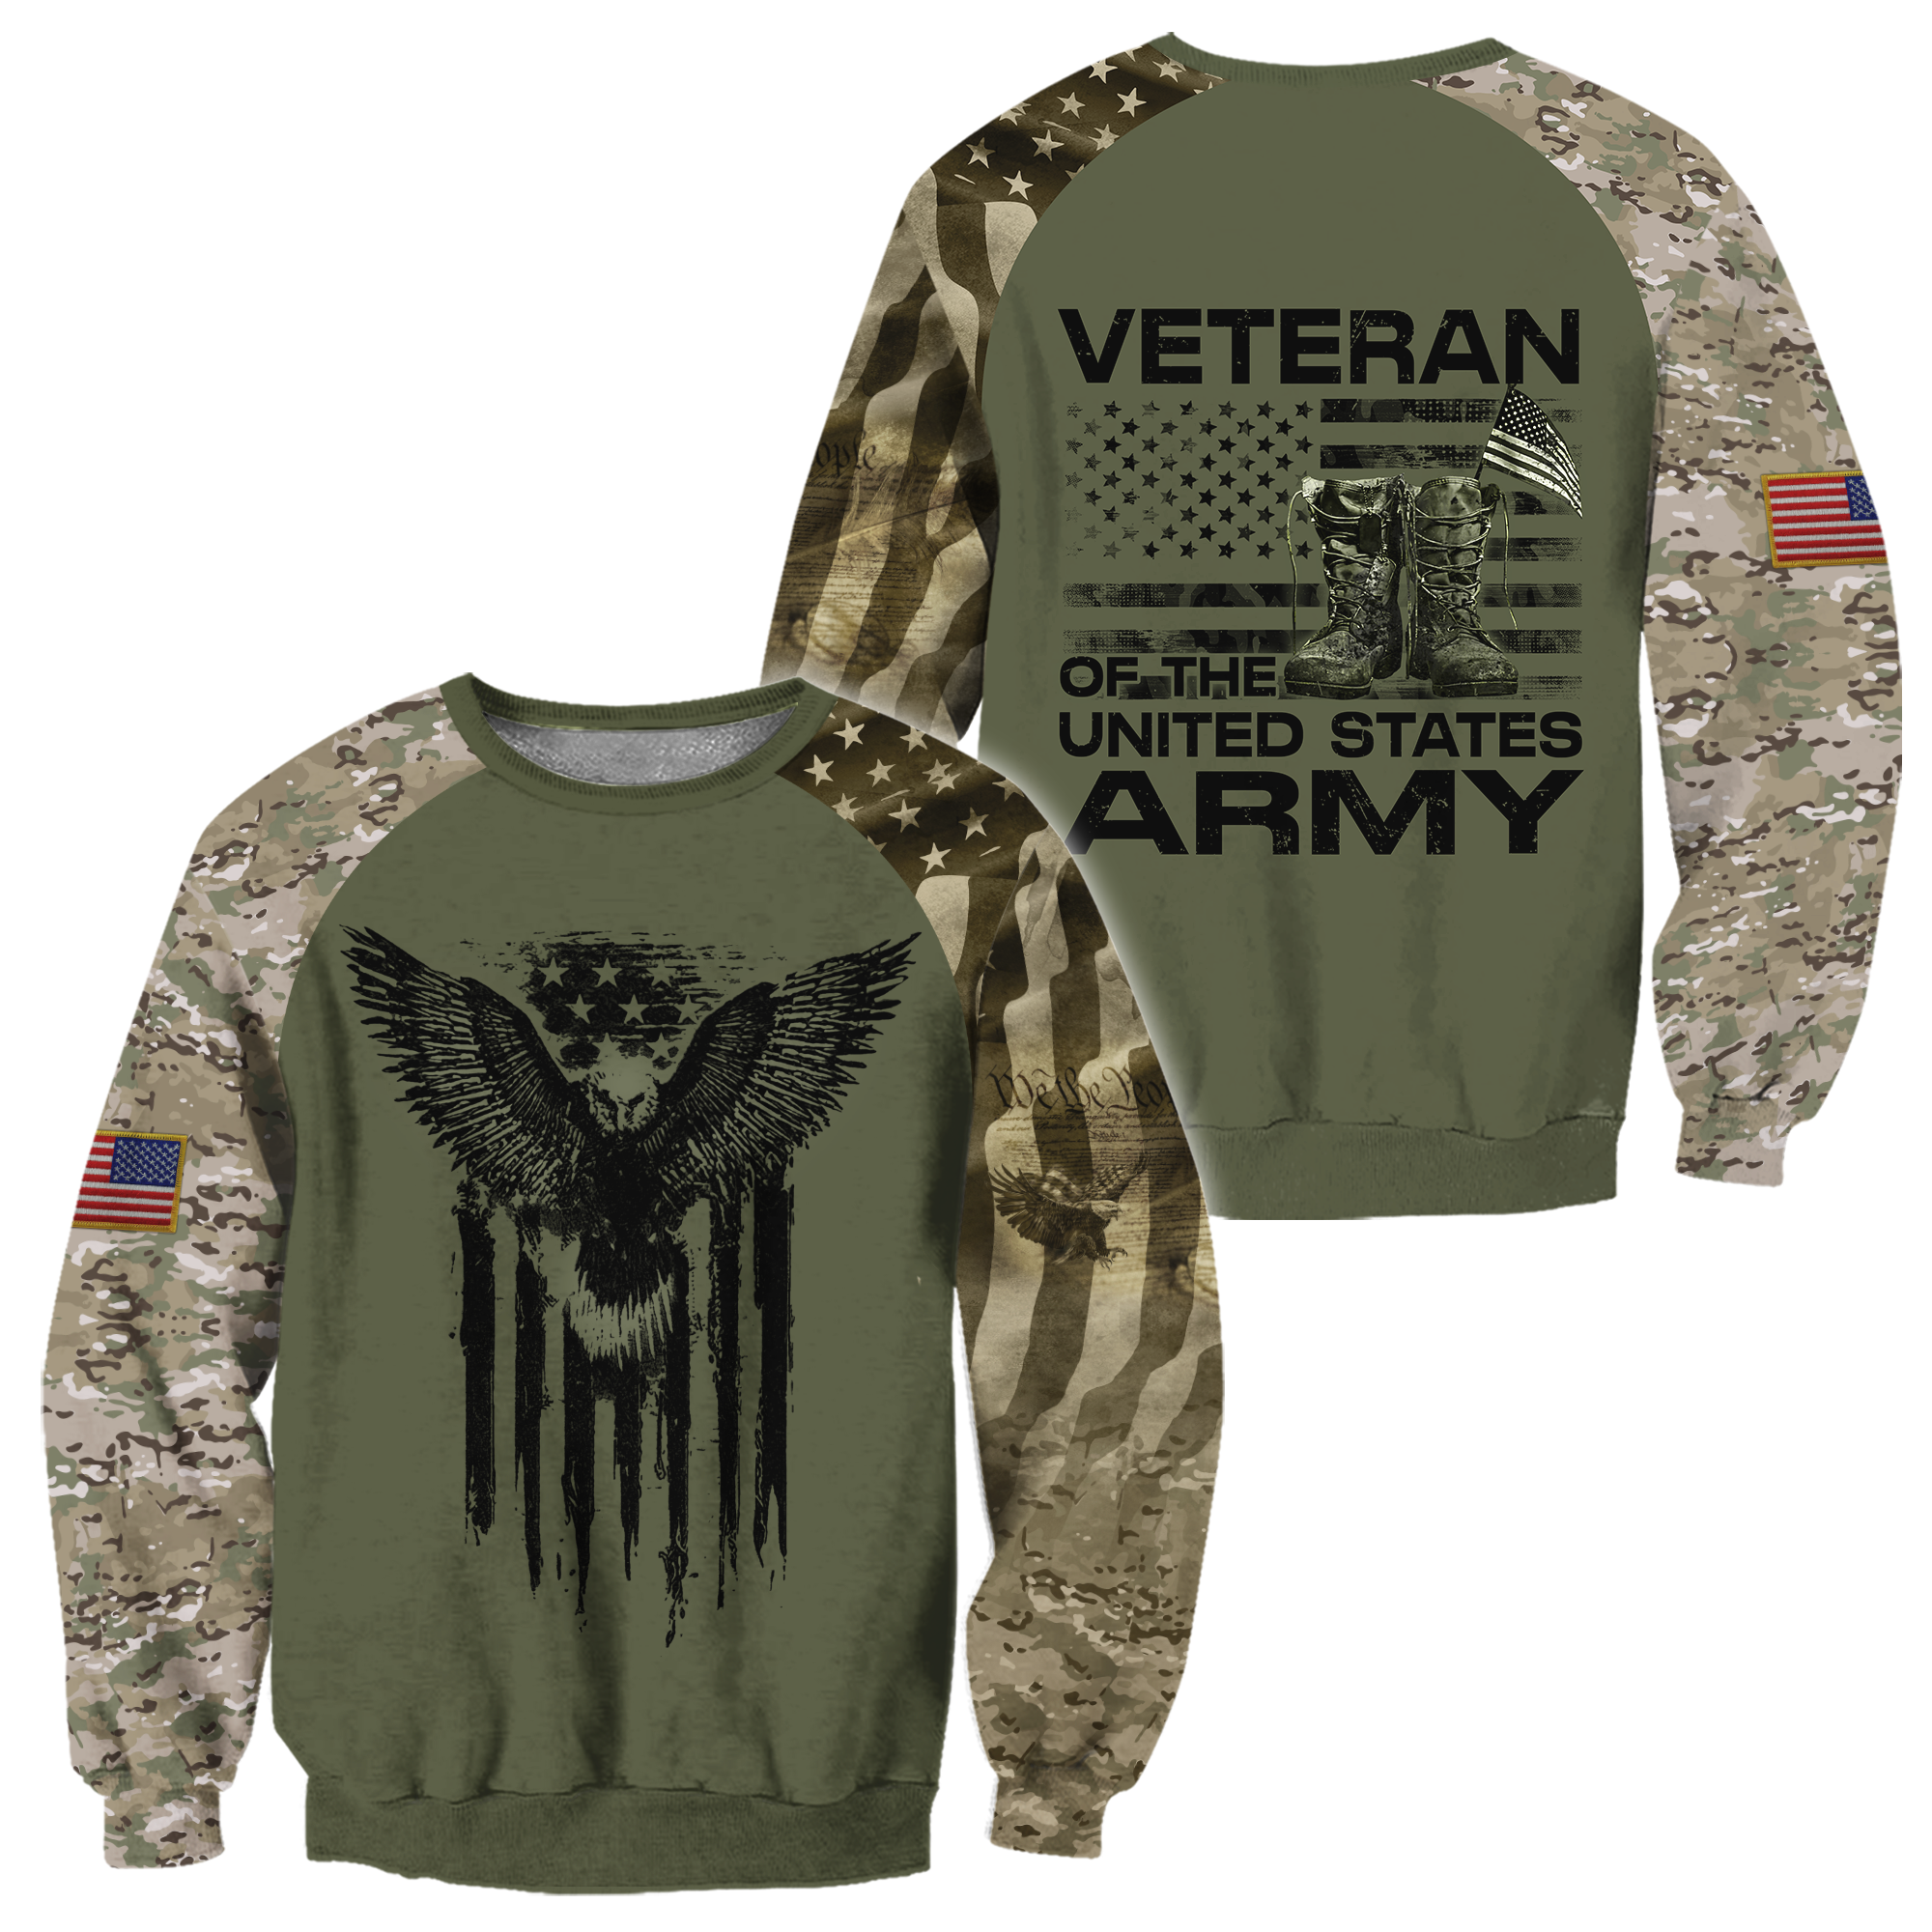 Looking for a better way to express your love to your heroes-who service for army, navy, air force, marine corps and other branches? There might be no better gift idea than an veteran shirt! The Veteran collection provides hoodies, T-shirt, zip, sweater, combo legging tank tops, custom shirt… on special occasions such as gifts for Christmas, gifts for birthday, Veteran day, Memorial day, Thankgiving day, Anniversary Graduation, etc. Thank you for your service! God bless you! LIMITED TIME OFFER A